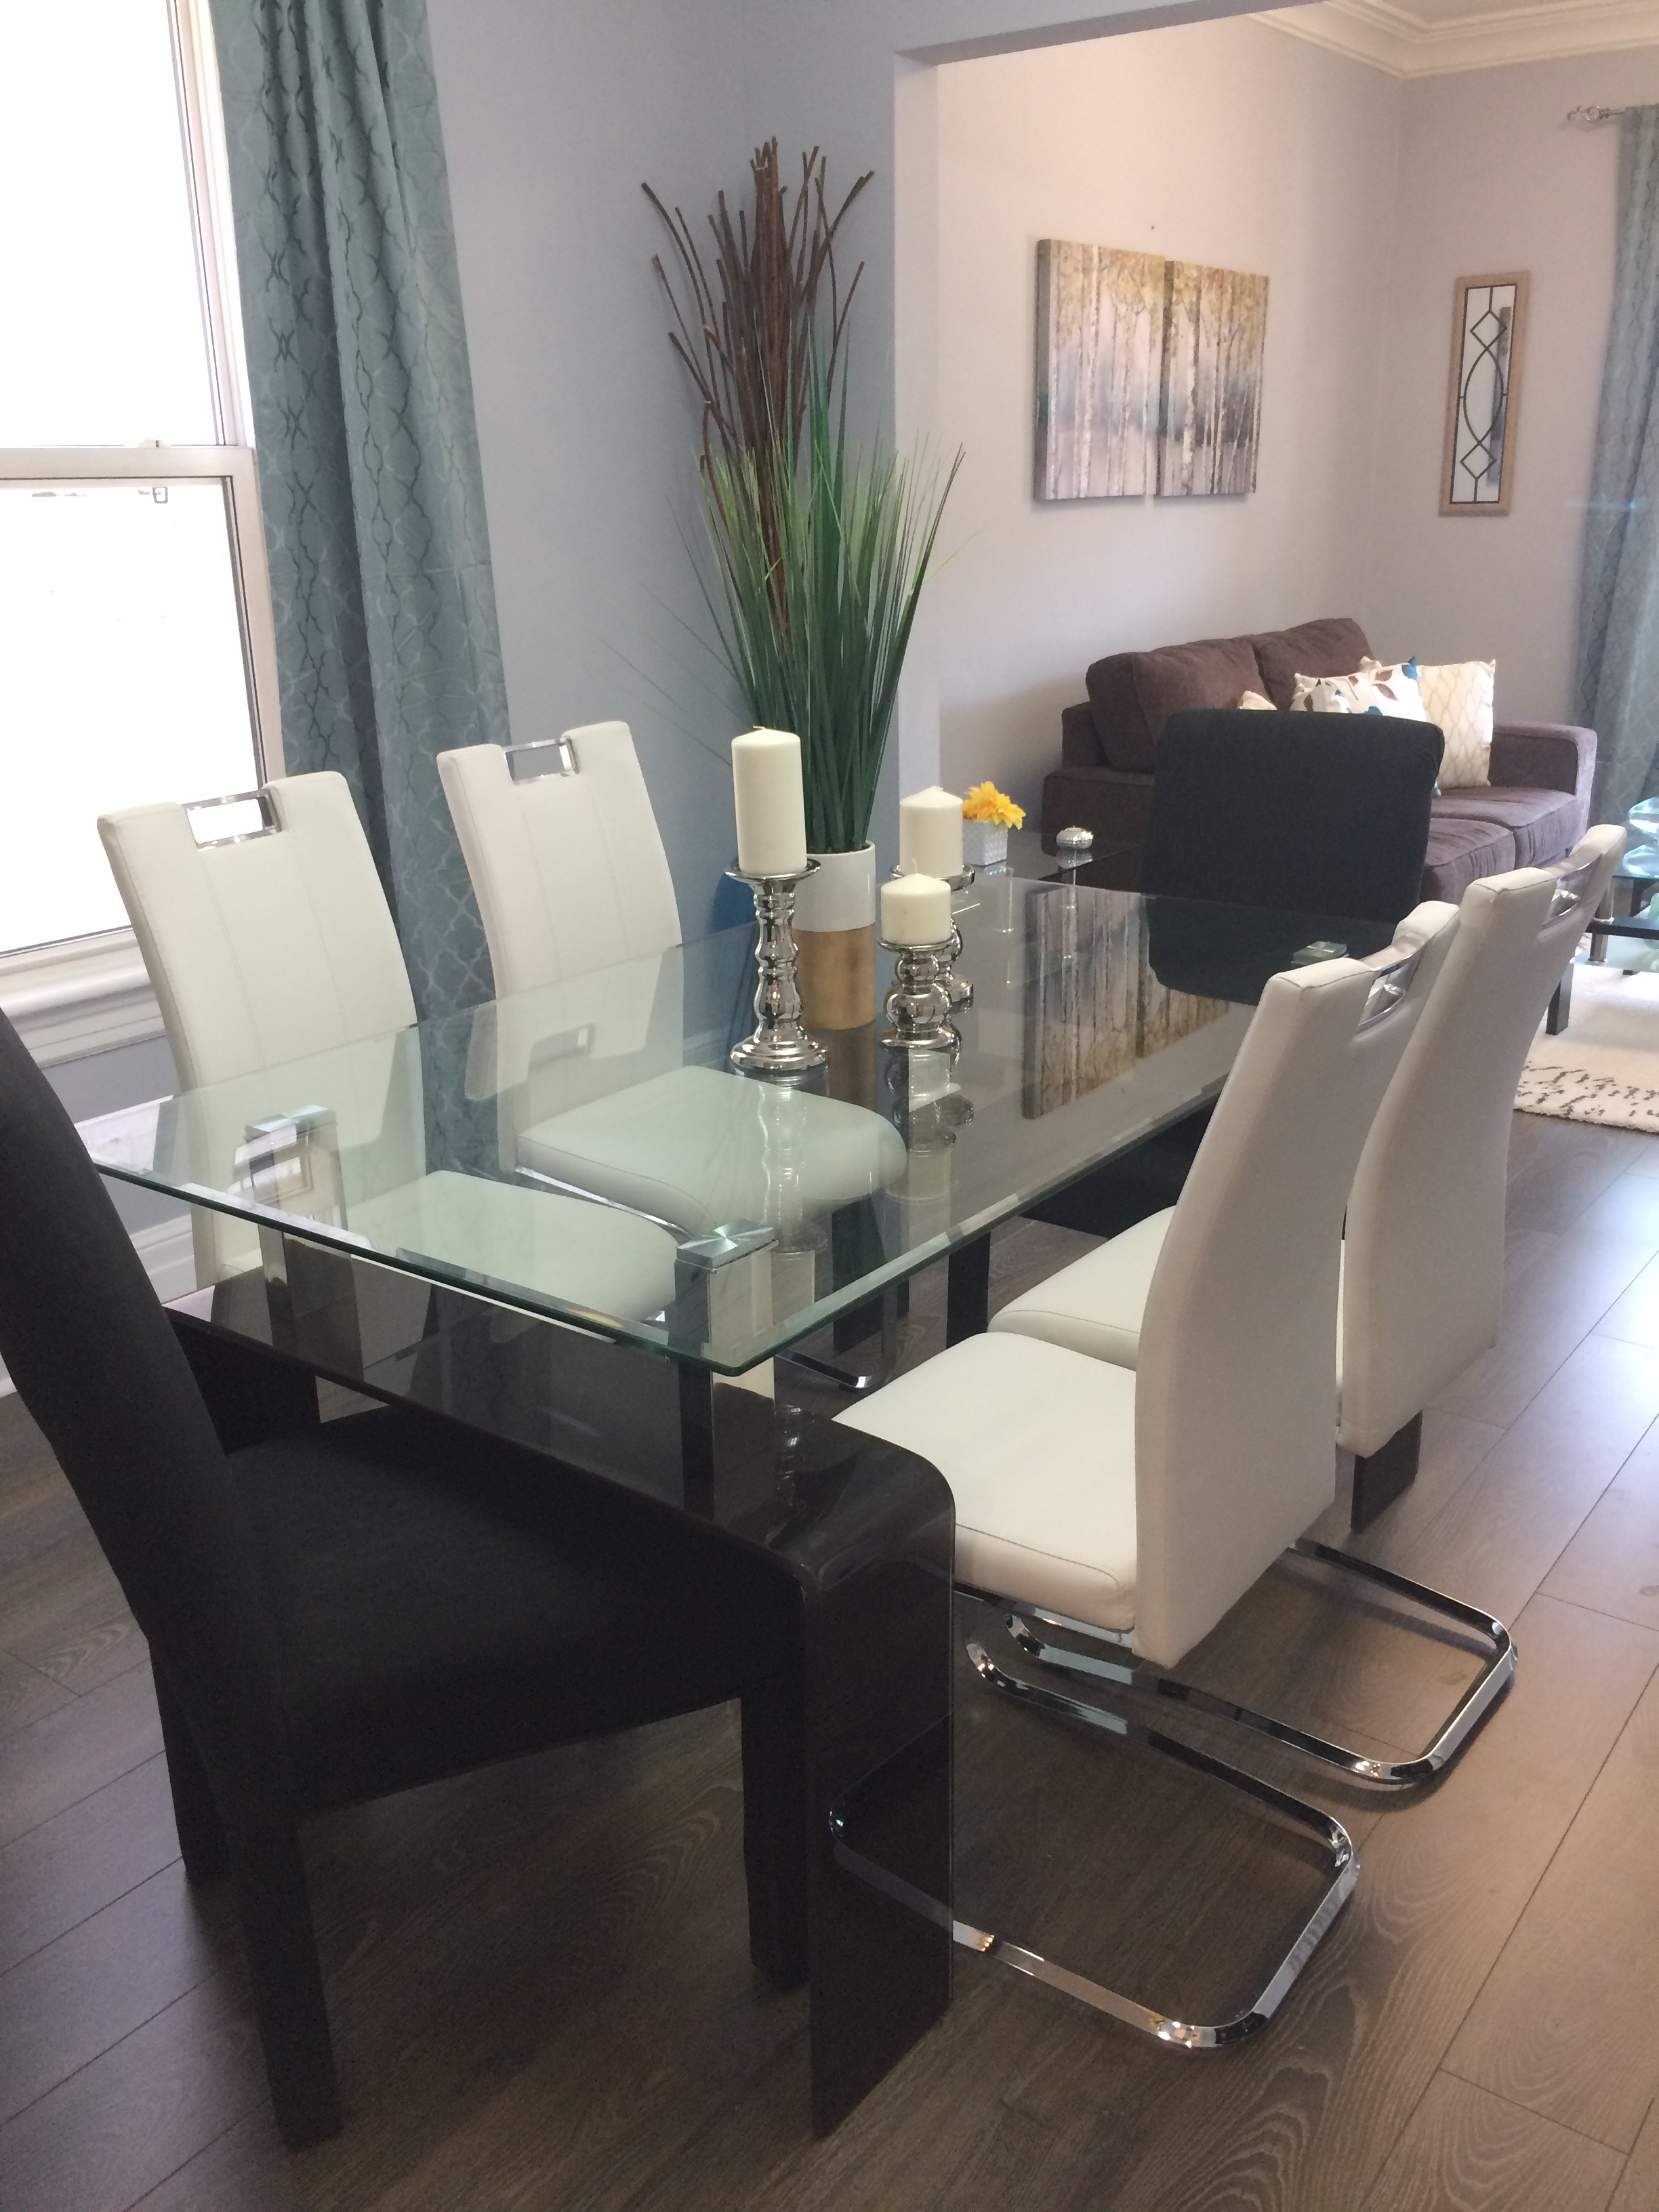 Most Popular Glass Dining Tables With Wooden Legs Throughout Rectangle Glass & Black Glass Leg Dining Table – M&m Home Staging (View 16 of 25)